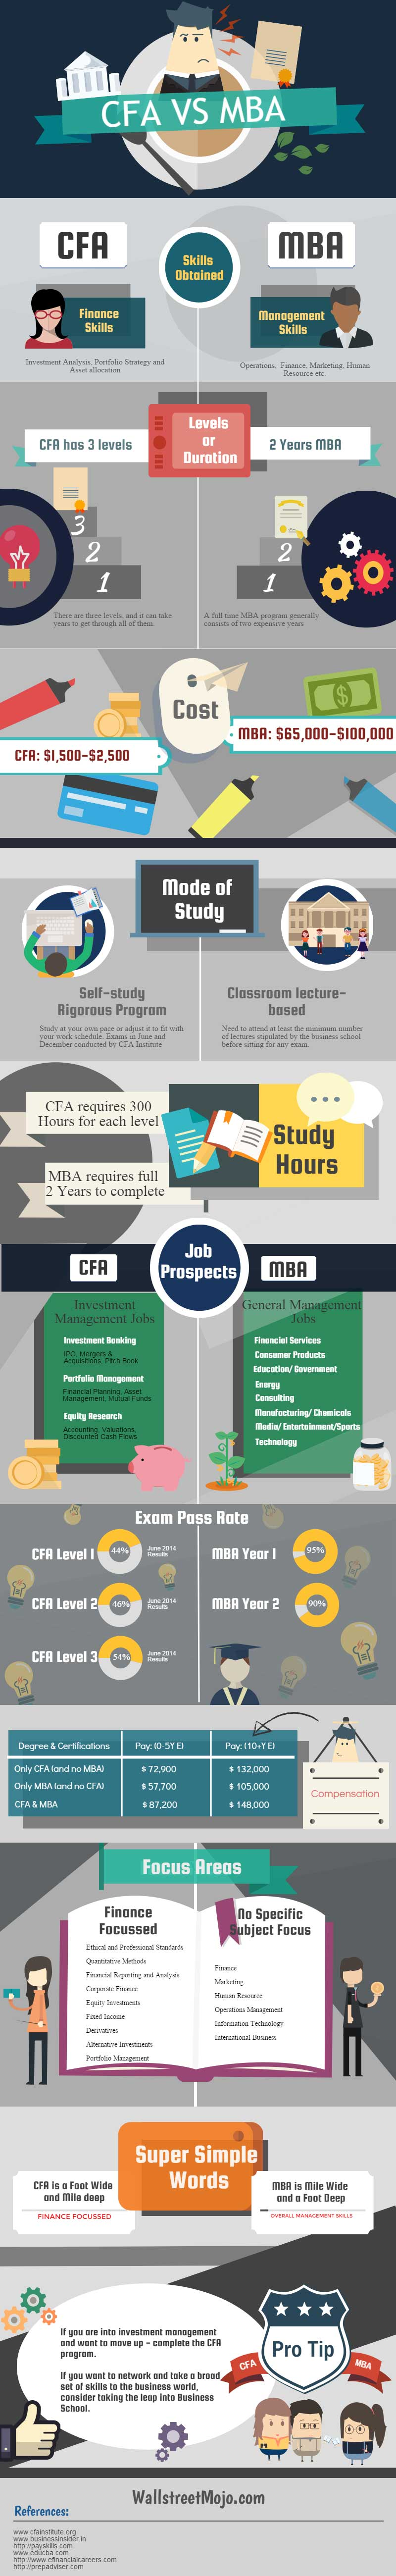 CFA vs MBA - Which is Best for Career